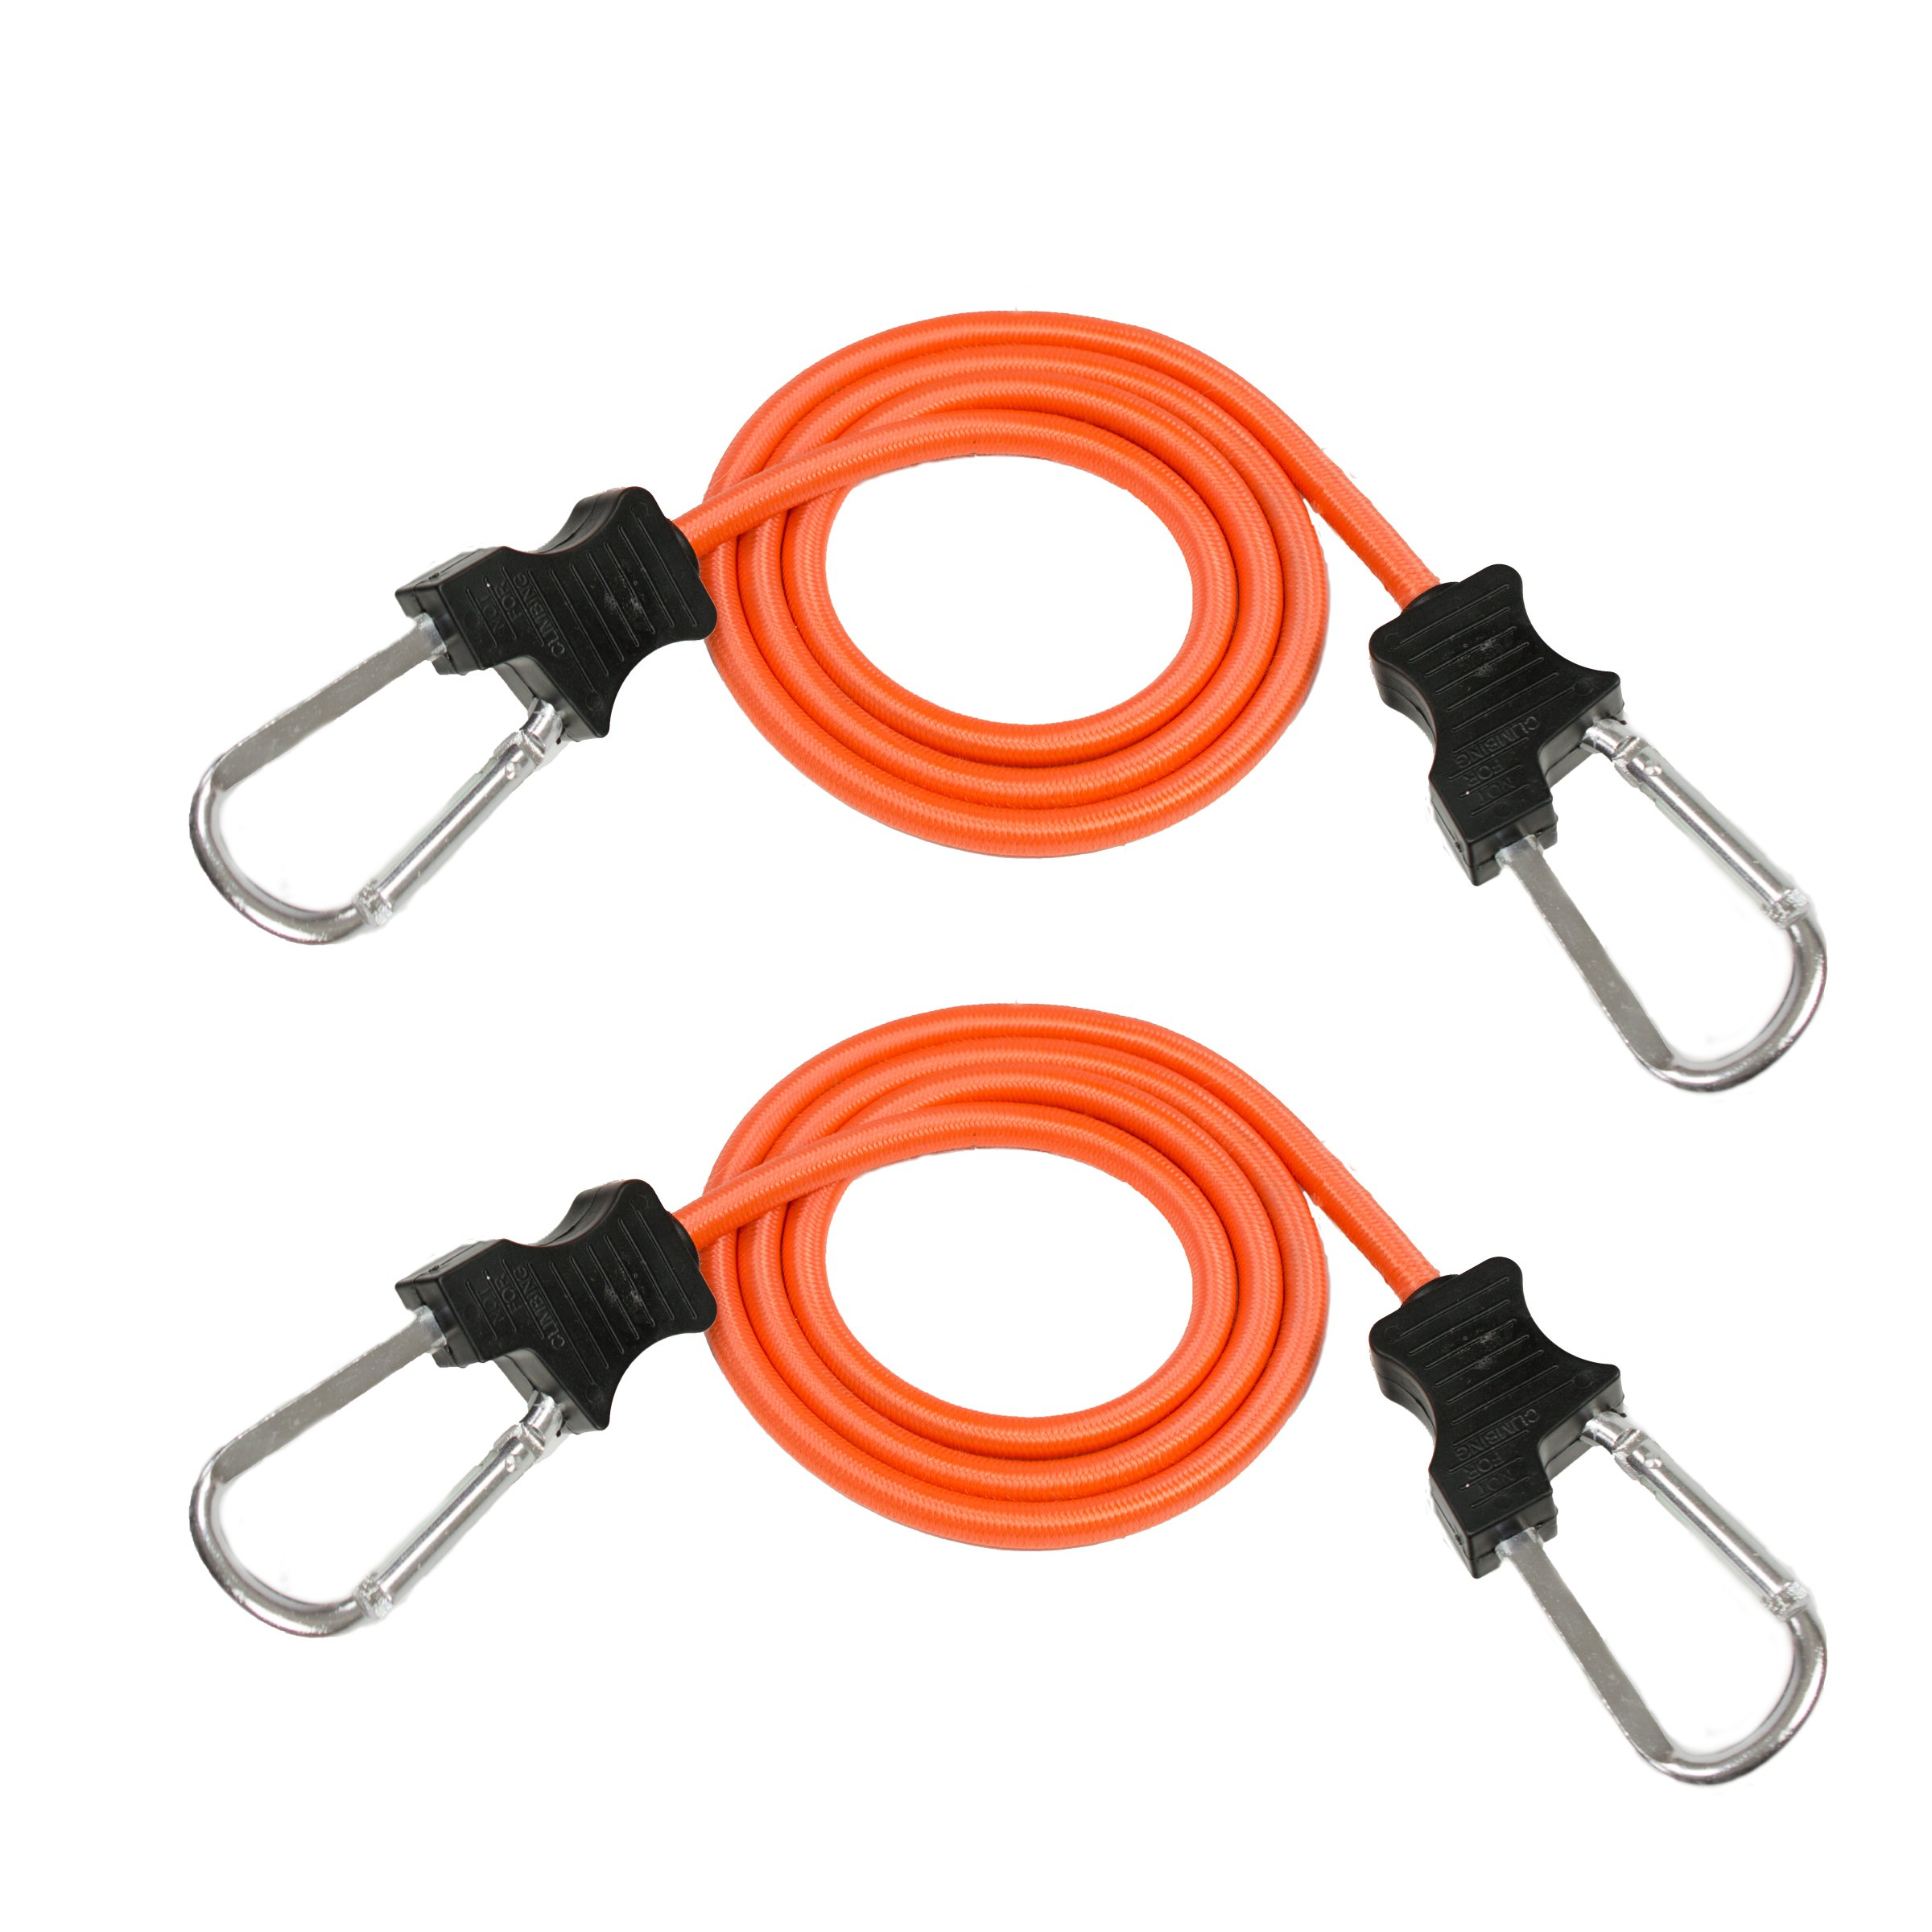 2 pack 48 inch Carabiner Bungee Cords Cargo, Vehicle, Camping, Luggage with Clips by Secure-It (Image #1)